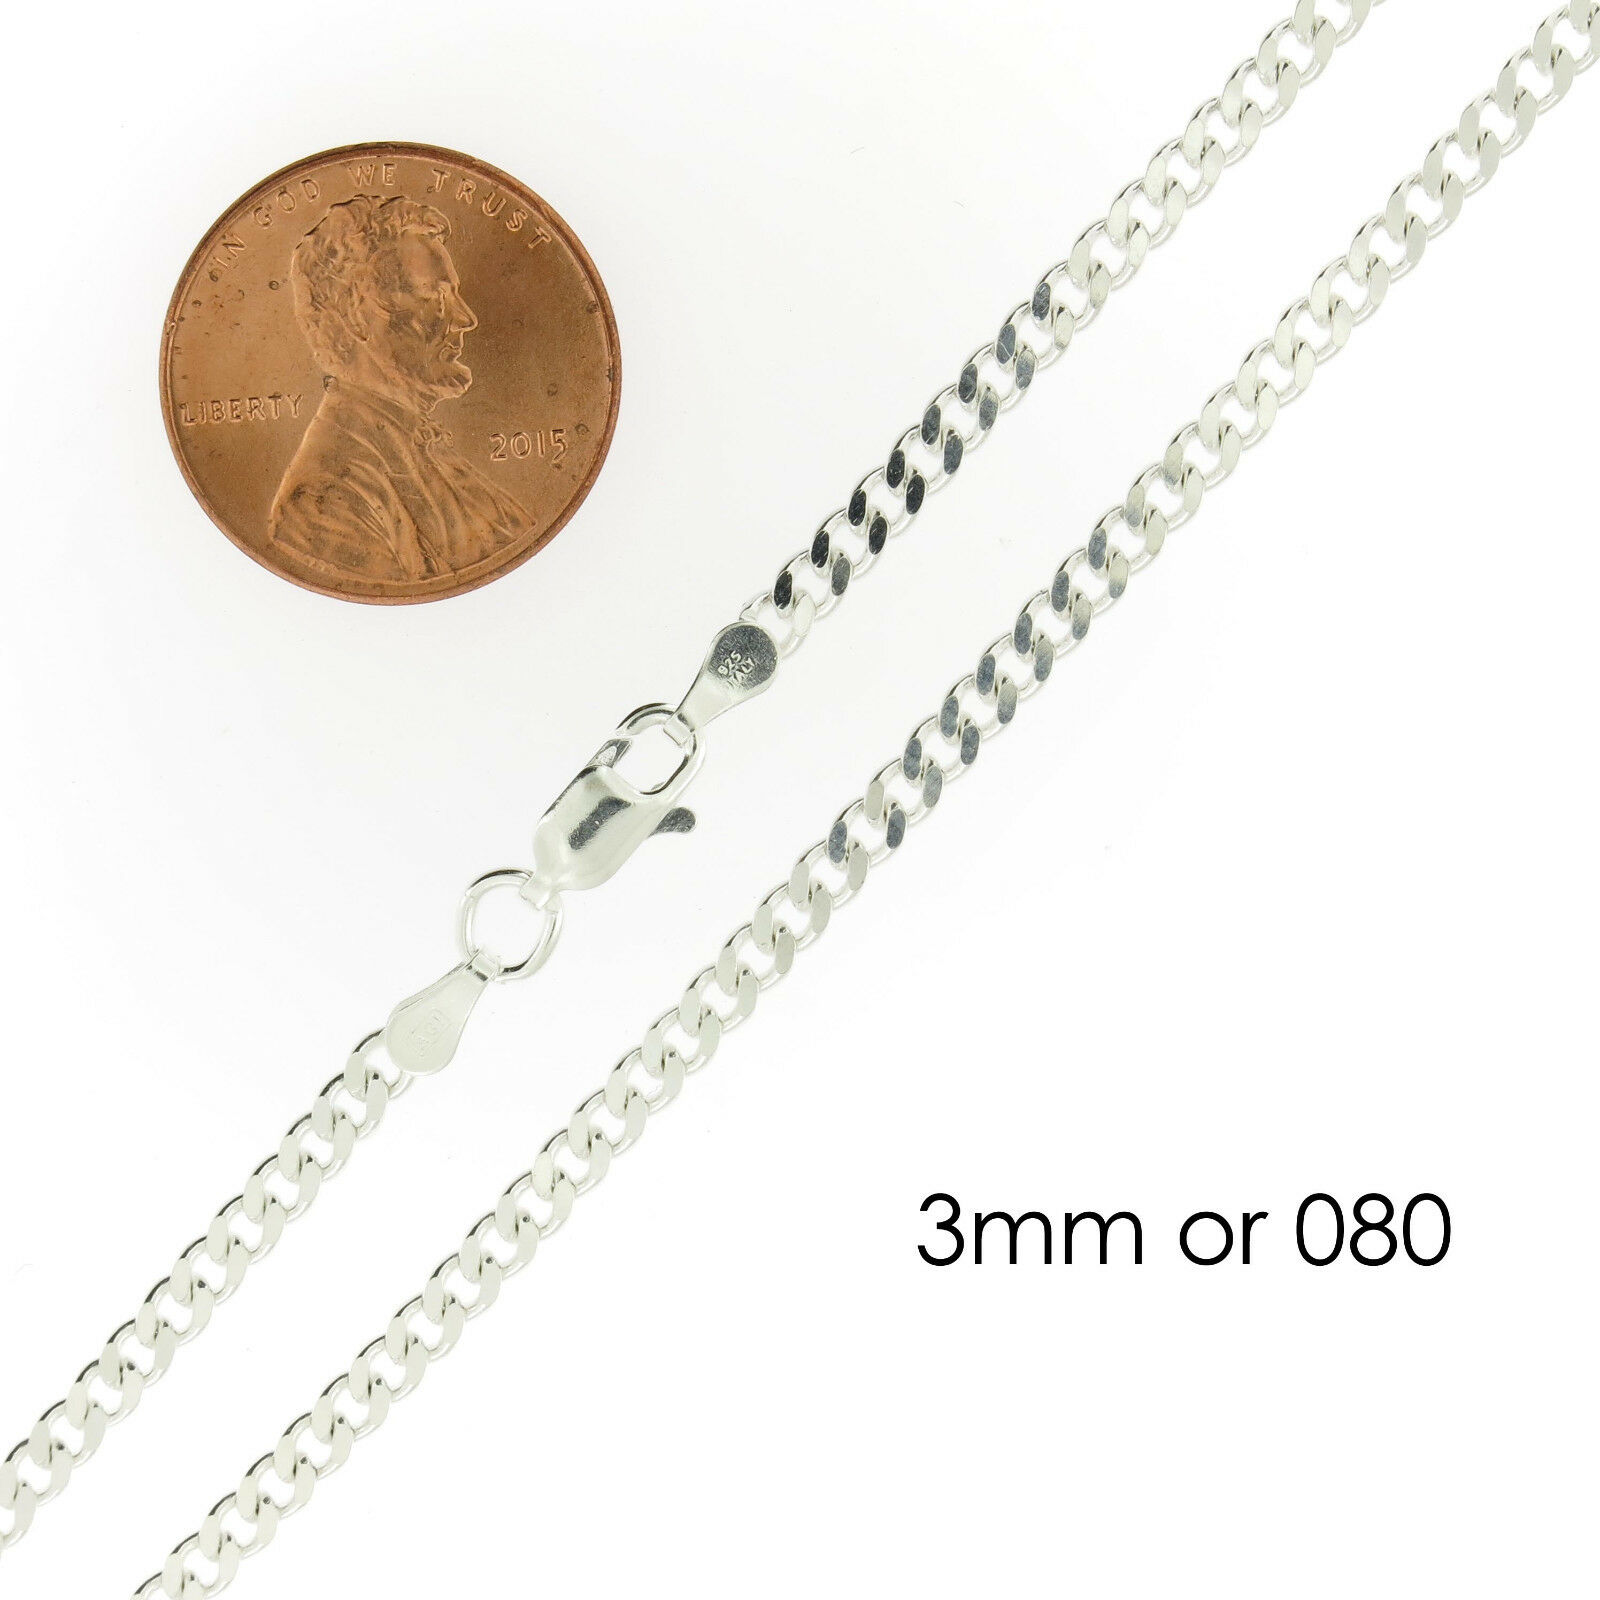 080 or 3 mm